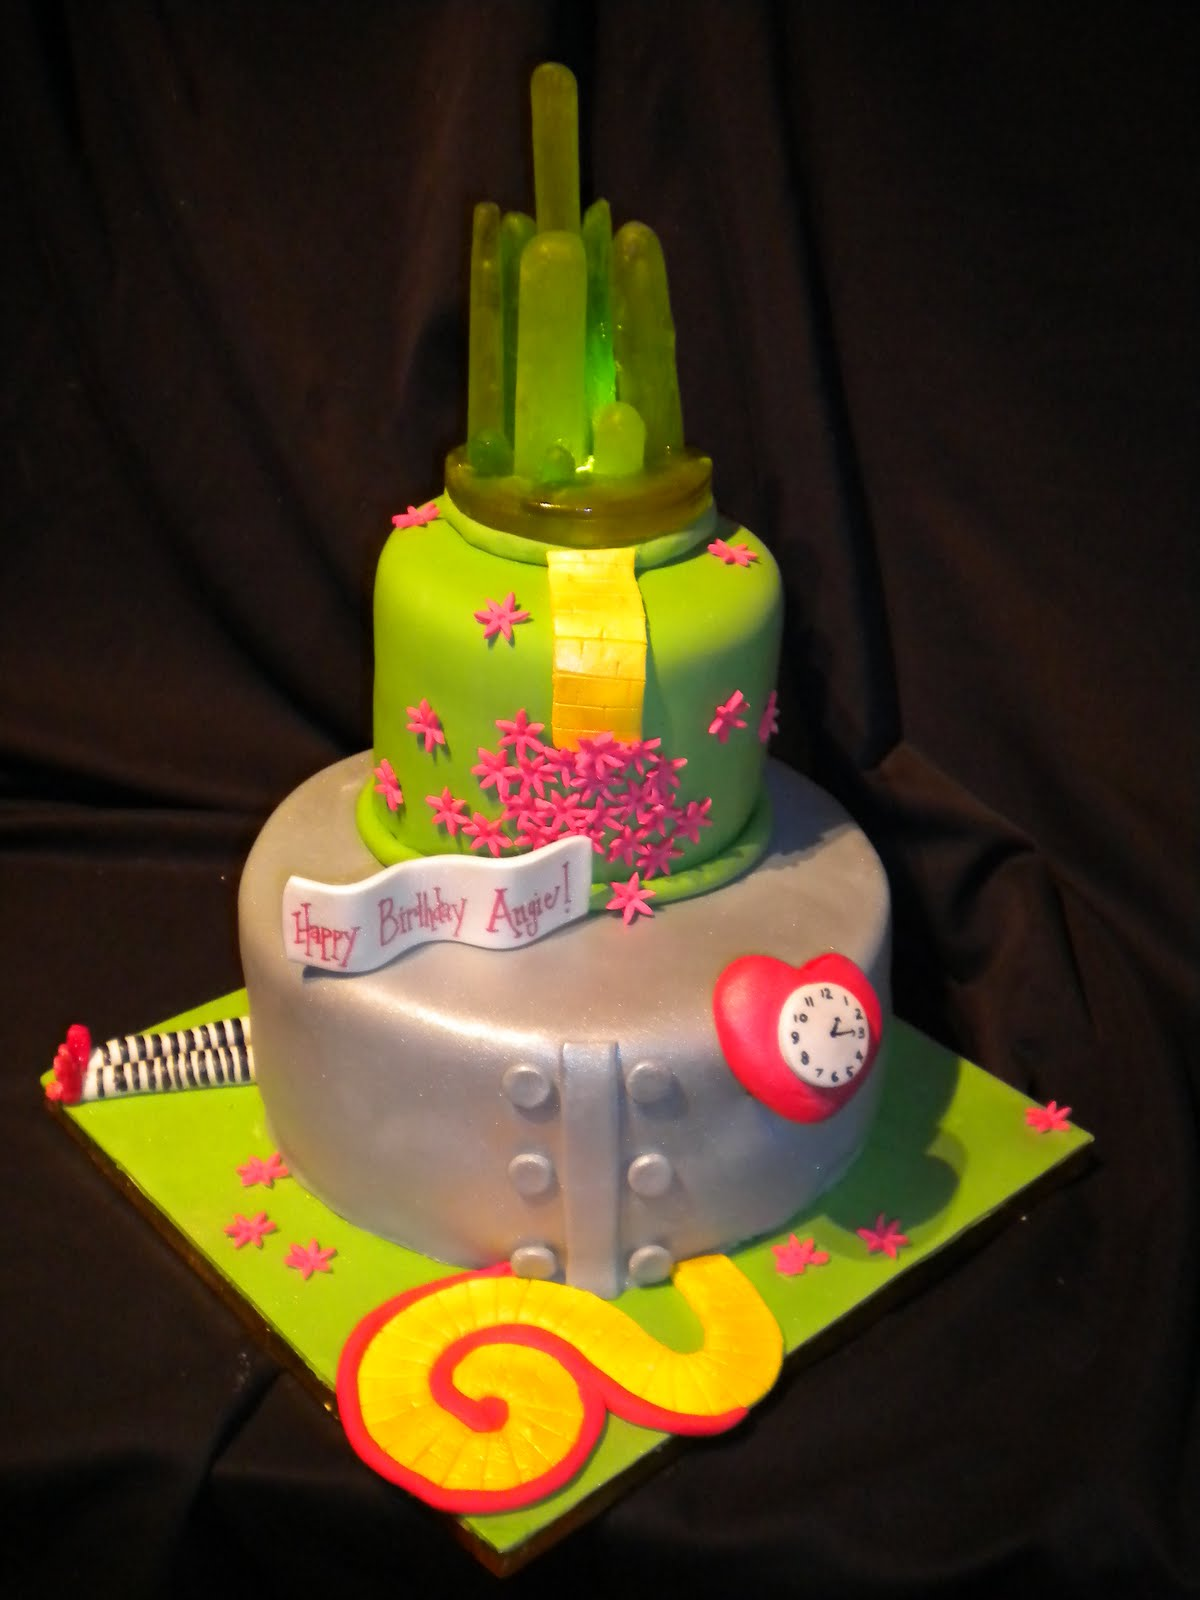 Cake Decorations For Wizard Of Oz : Cake, Hope, and Love: Wizard of Oz Cake